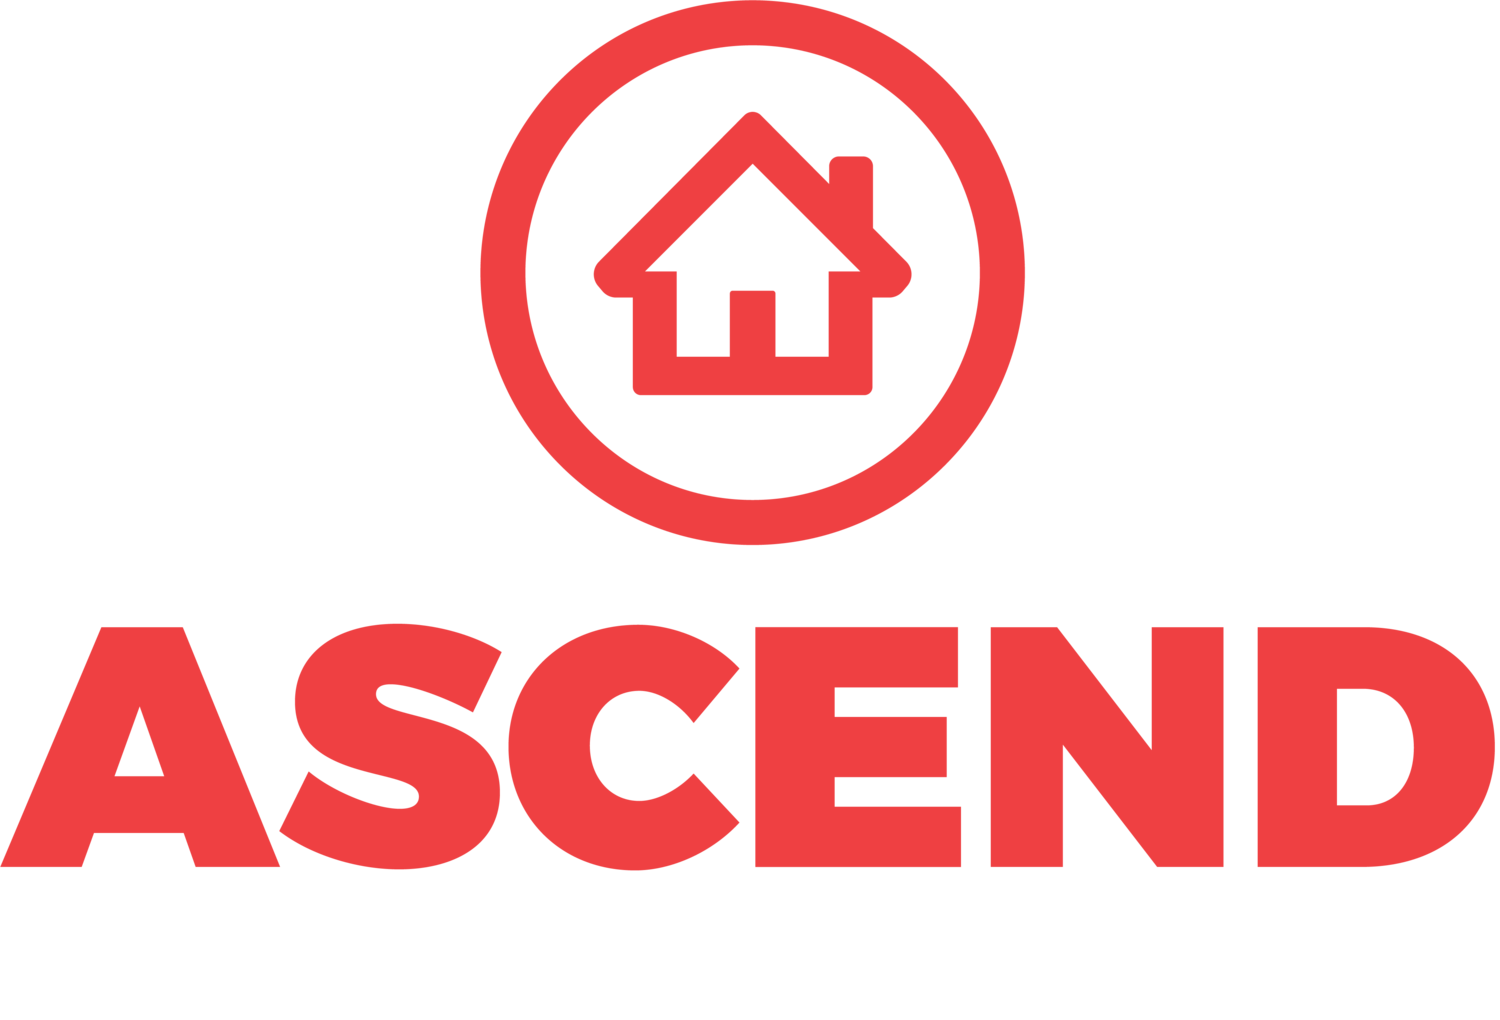 Bakersfield Real Estate and Homes for Sale - Ascend Real Estate